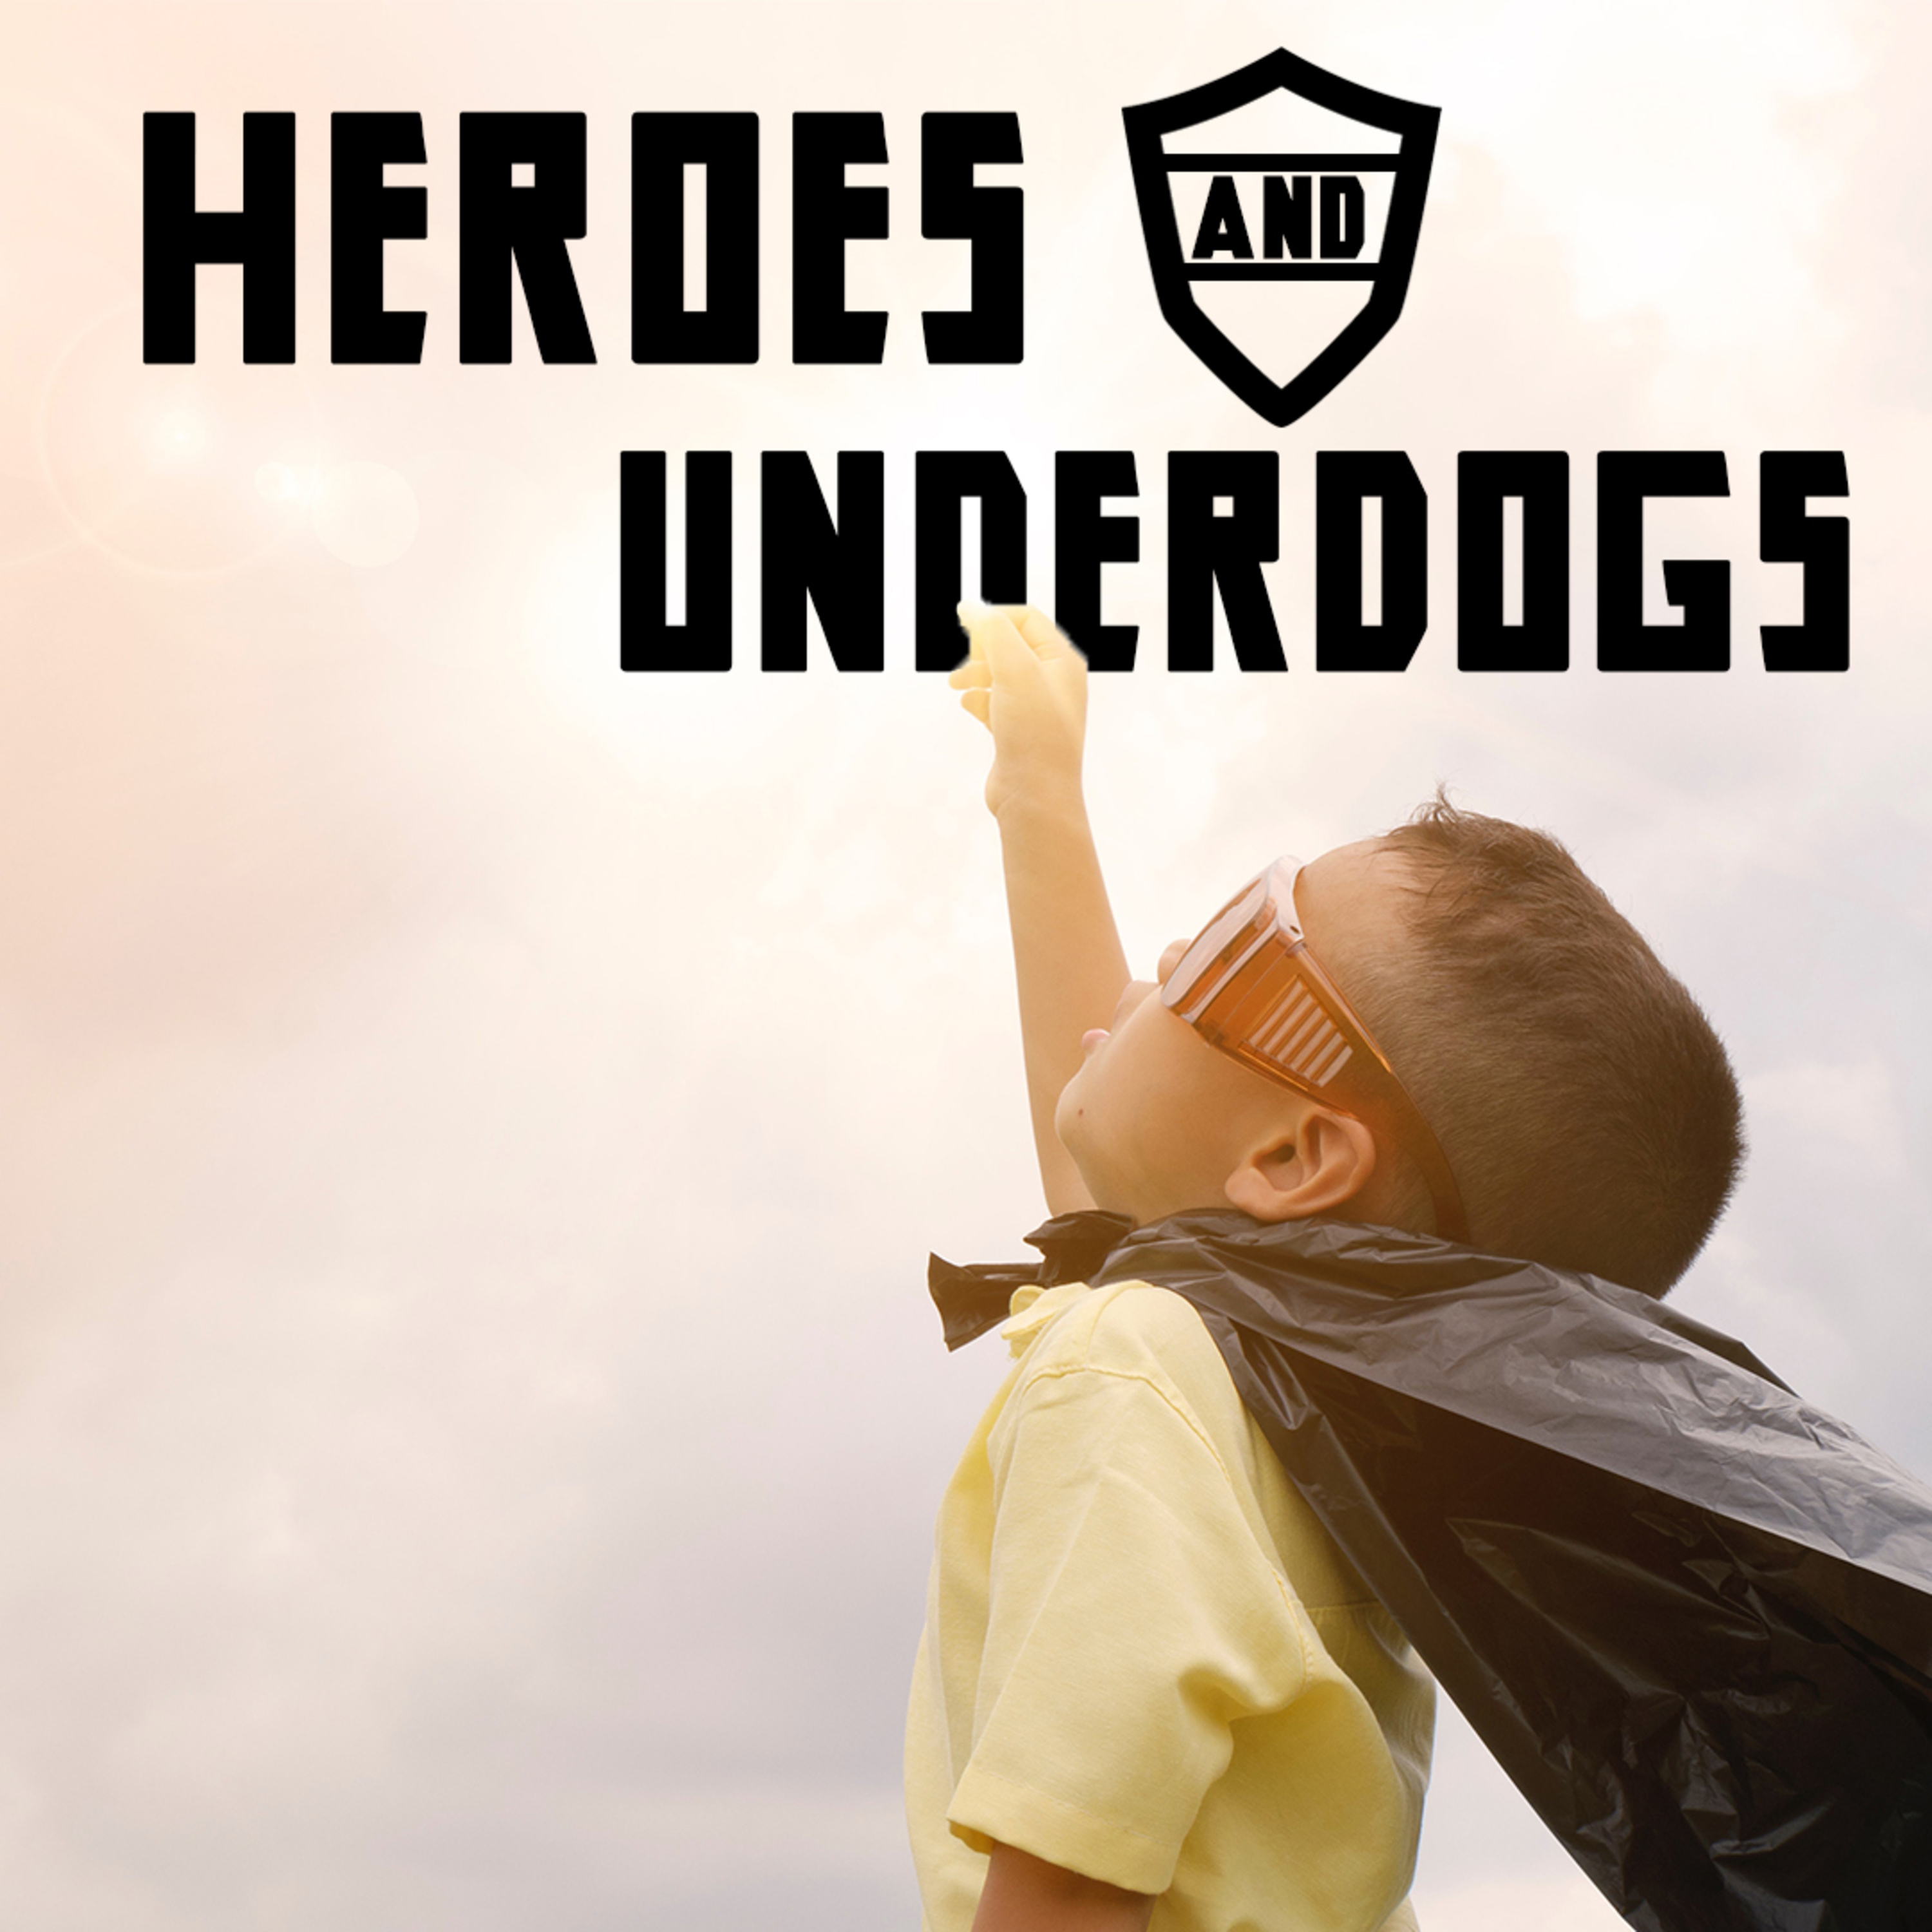 Heroes and Underdogs #29